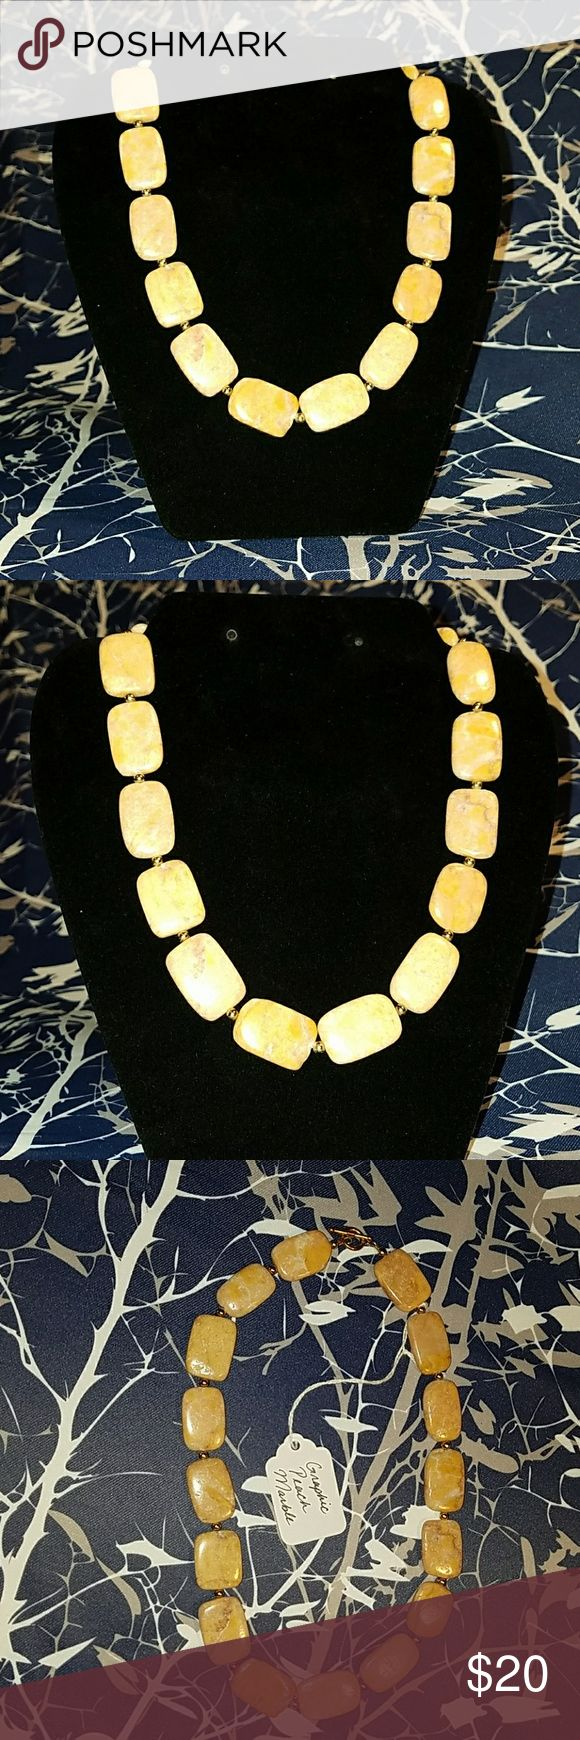 """Leanne"" Graphic Peach Marble Necklace Handmade Necklace. Leanne's stones are genuine graphic peach marble with gold colored beads. Stones are a light peach color with hints of maroon and goldenrod yellow. 19"" long. Great for fall! Jewelry Necklaces"